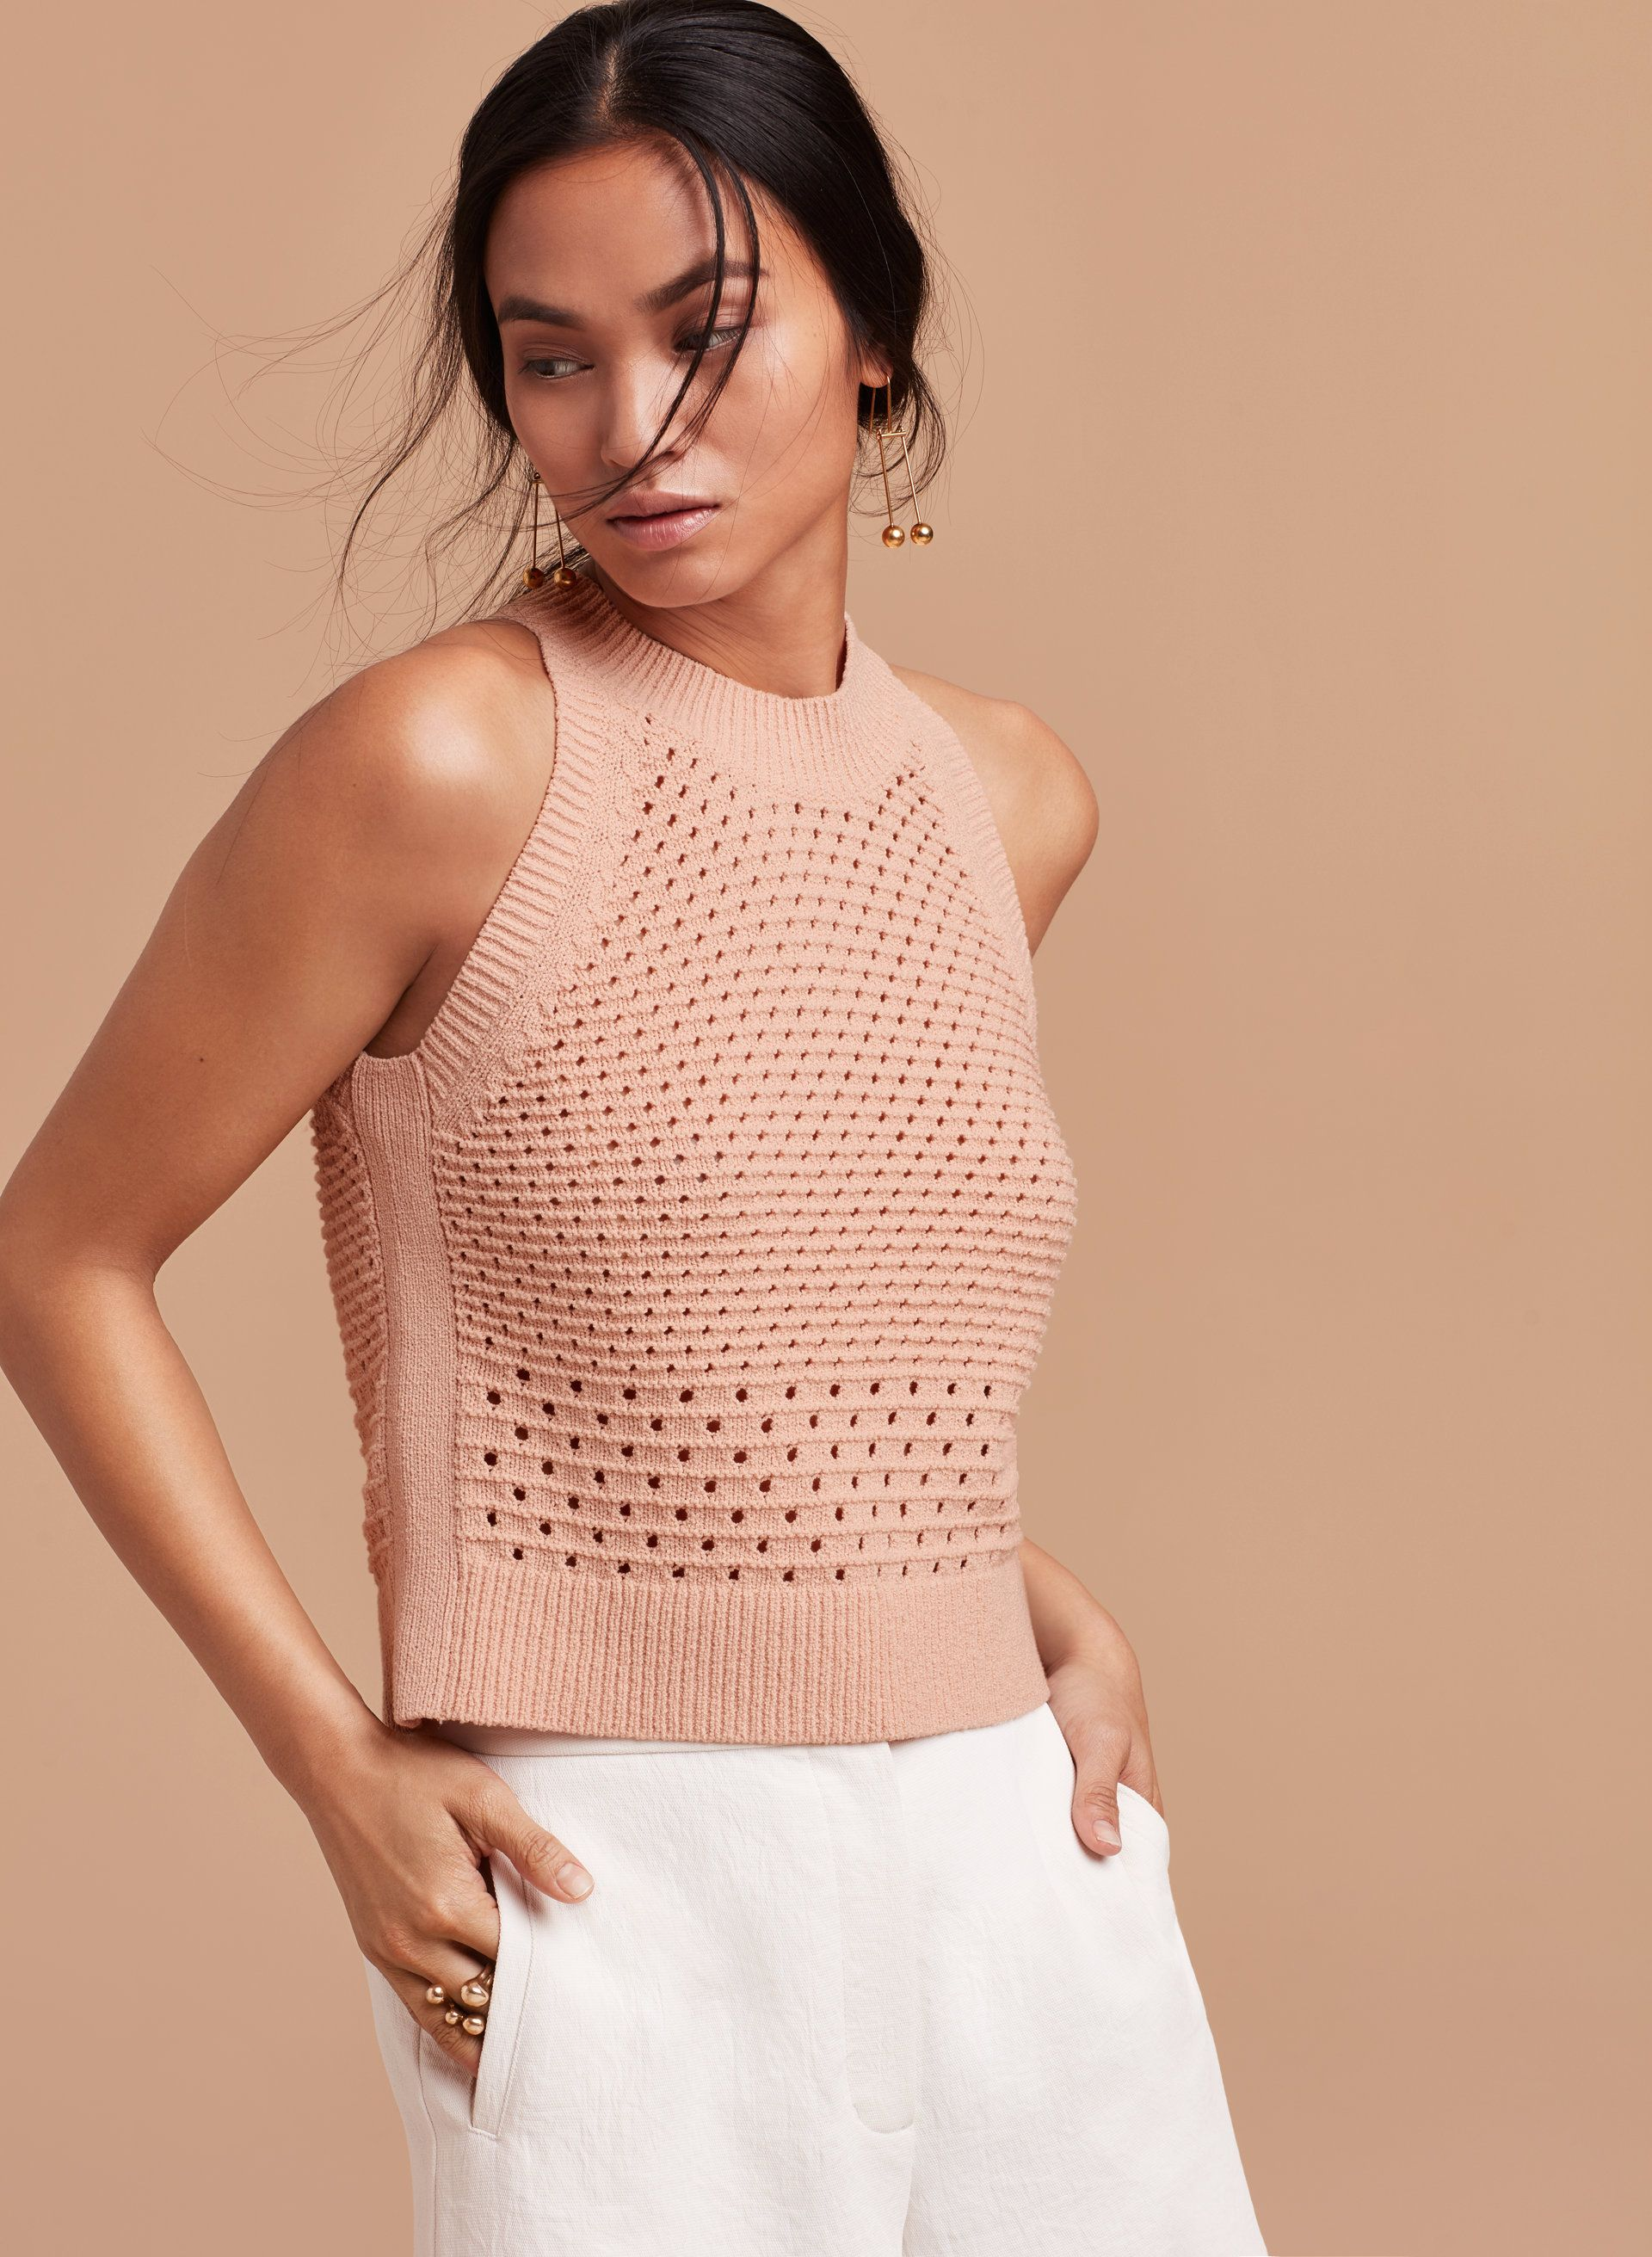 Knitting Summer Top : Taverny knit top crochet knitwear and